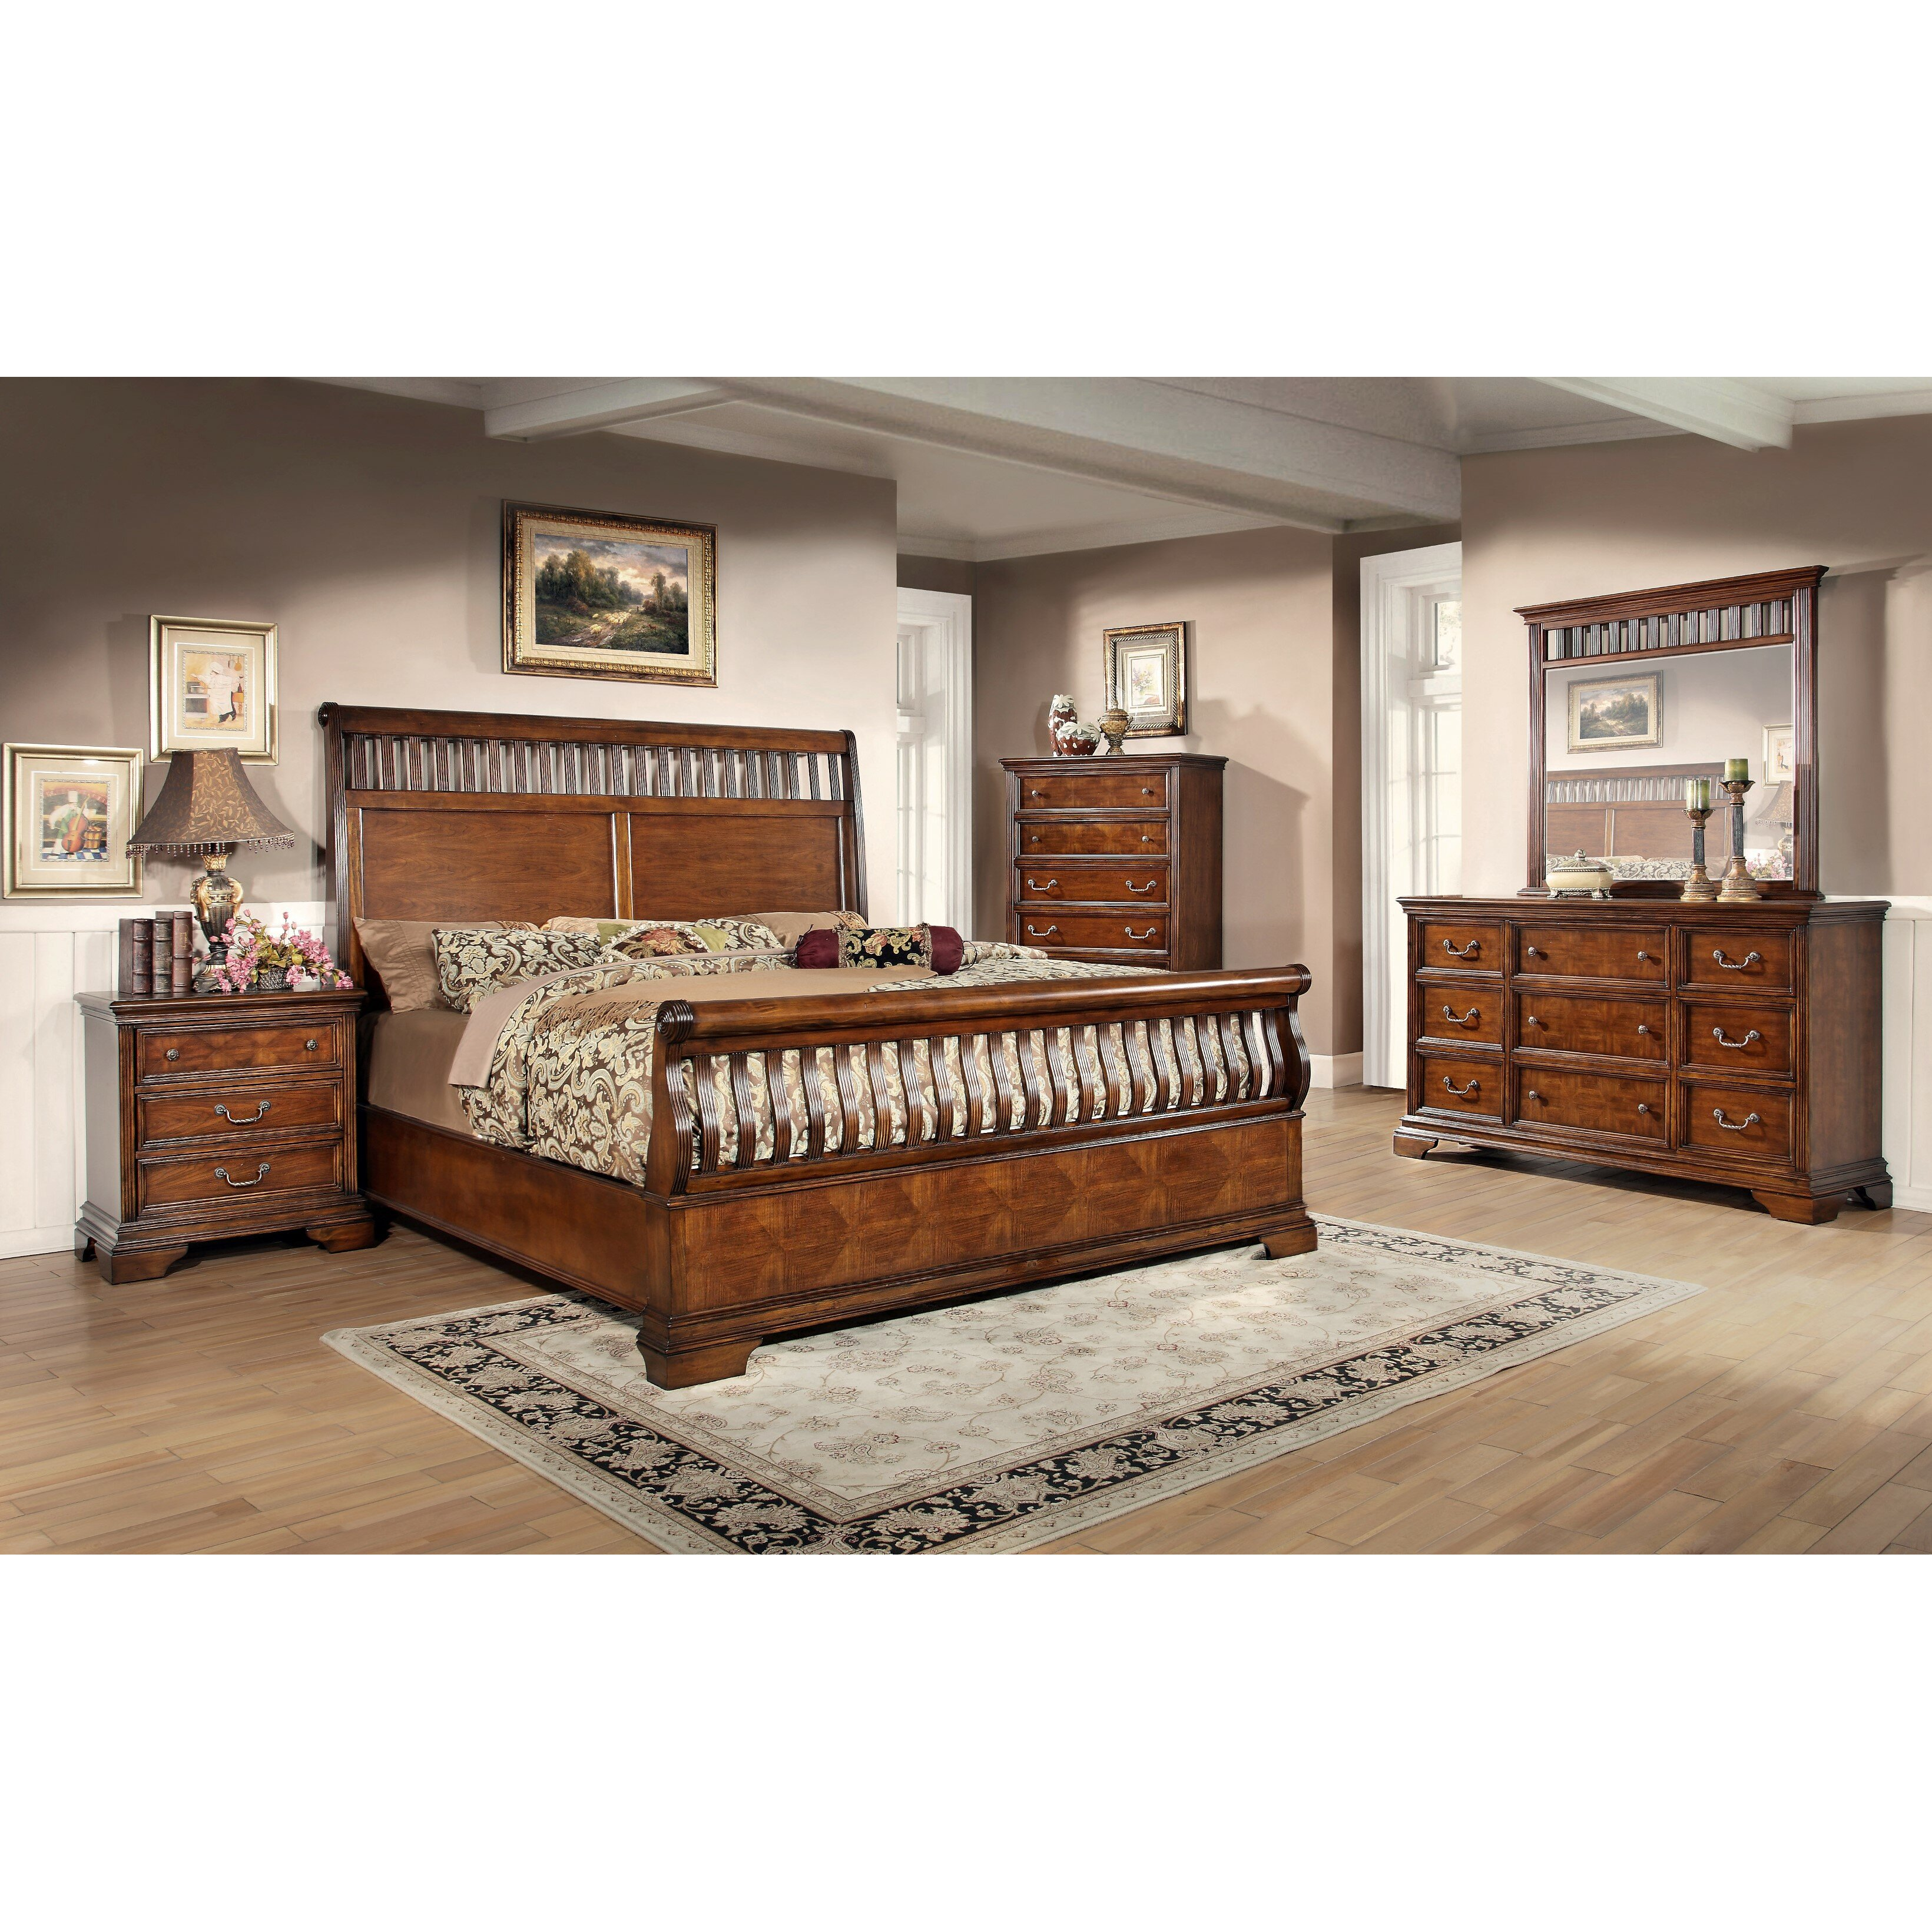 Fairfax Home Collections Waverly Place Sleigh Customizable Bedroom The Room Place Bedroom Sets